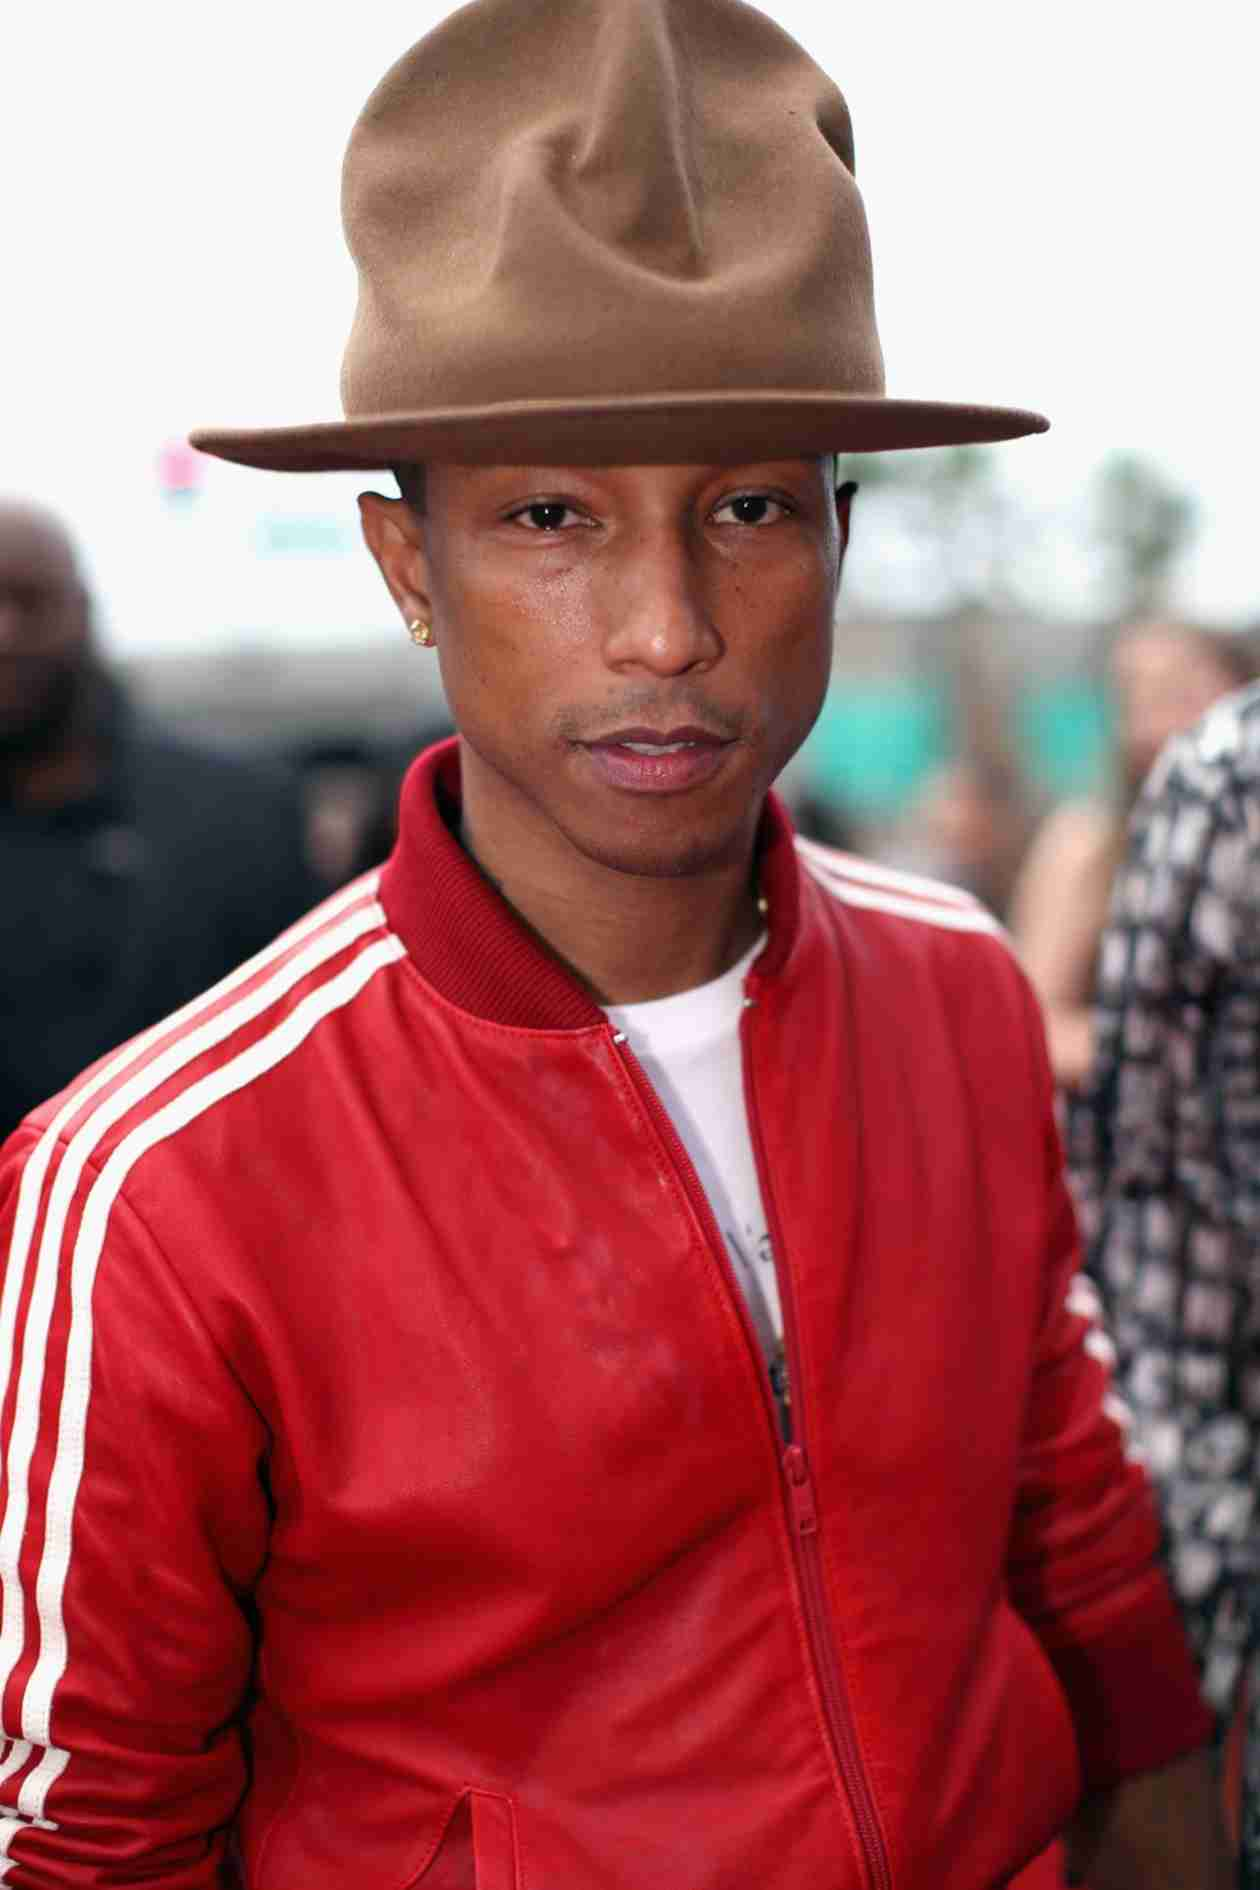 Pharrell Williams, Adam Levine, or Blake Shelton: Who's Older?